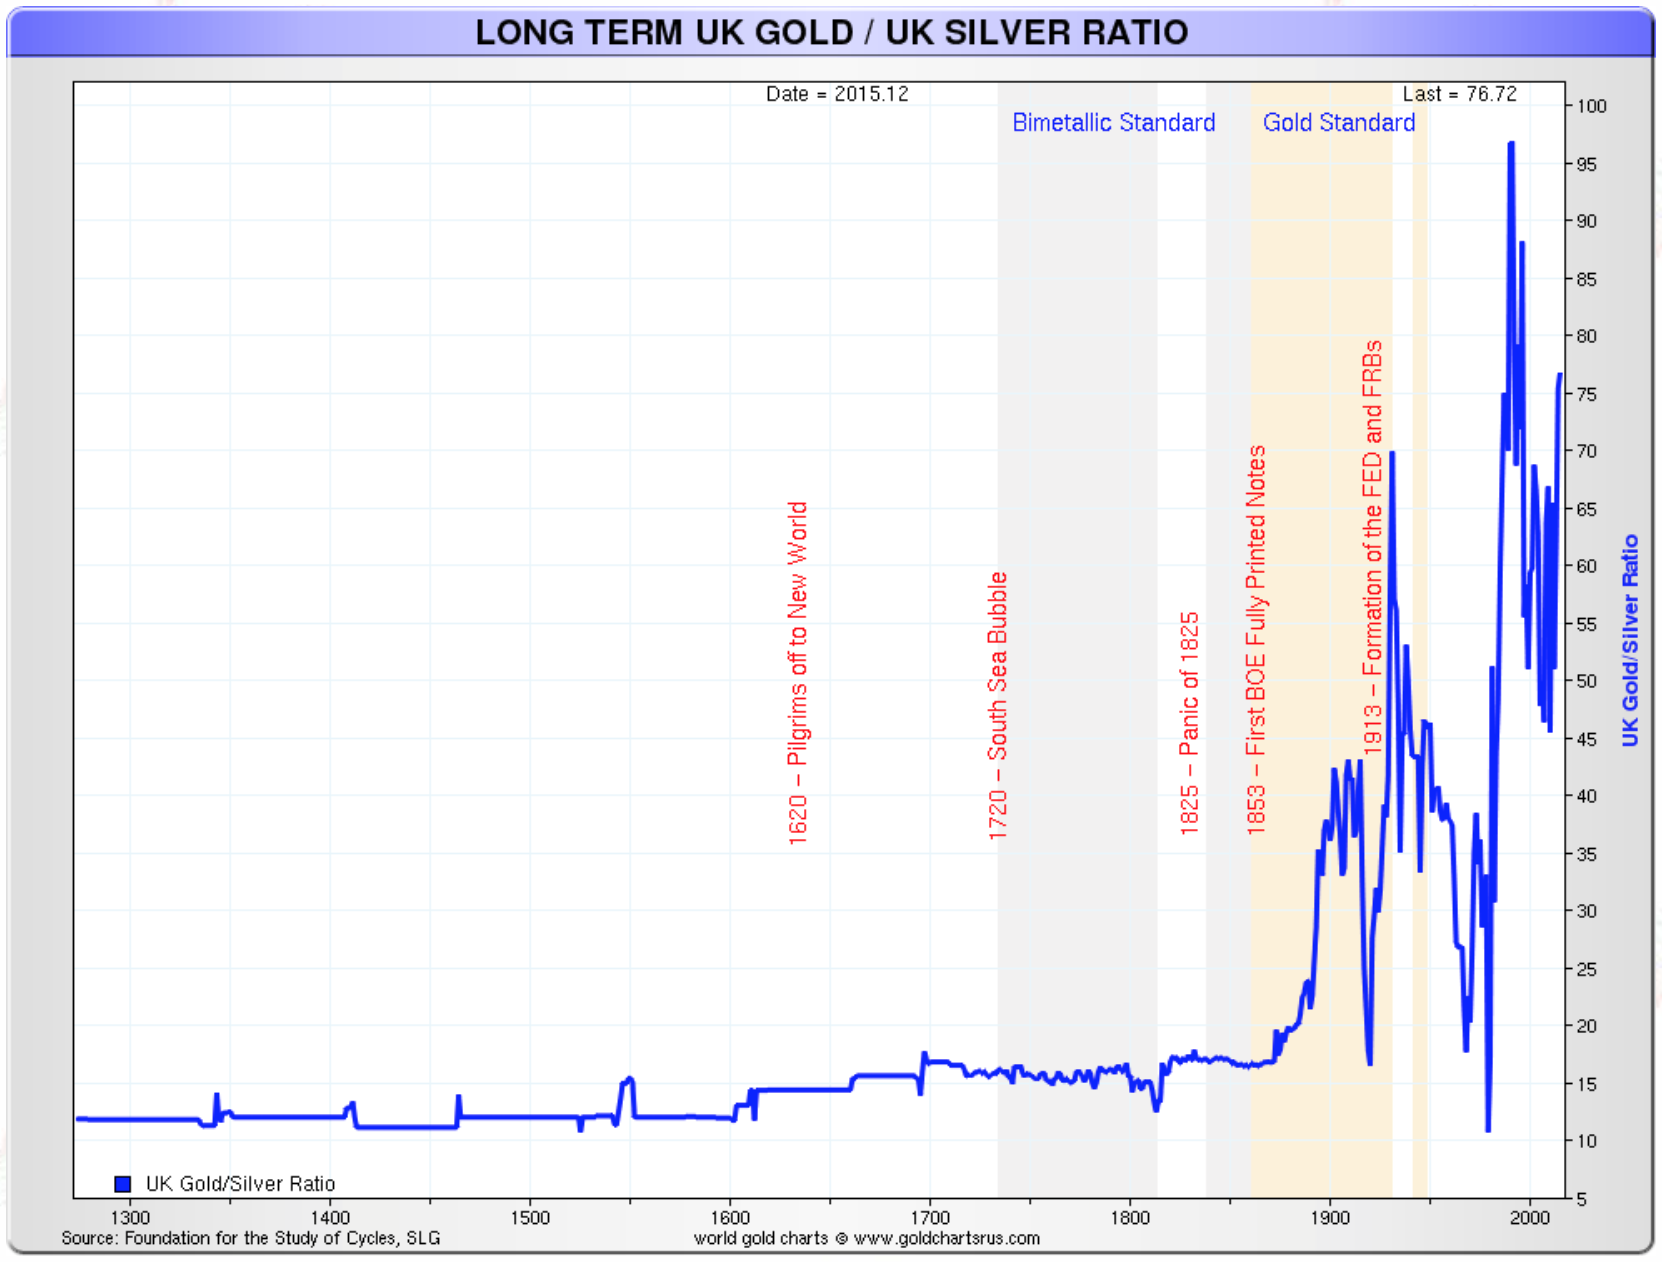 Long Term UK gold / UK silver ratio